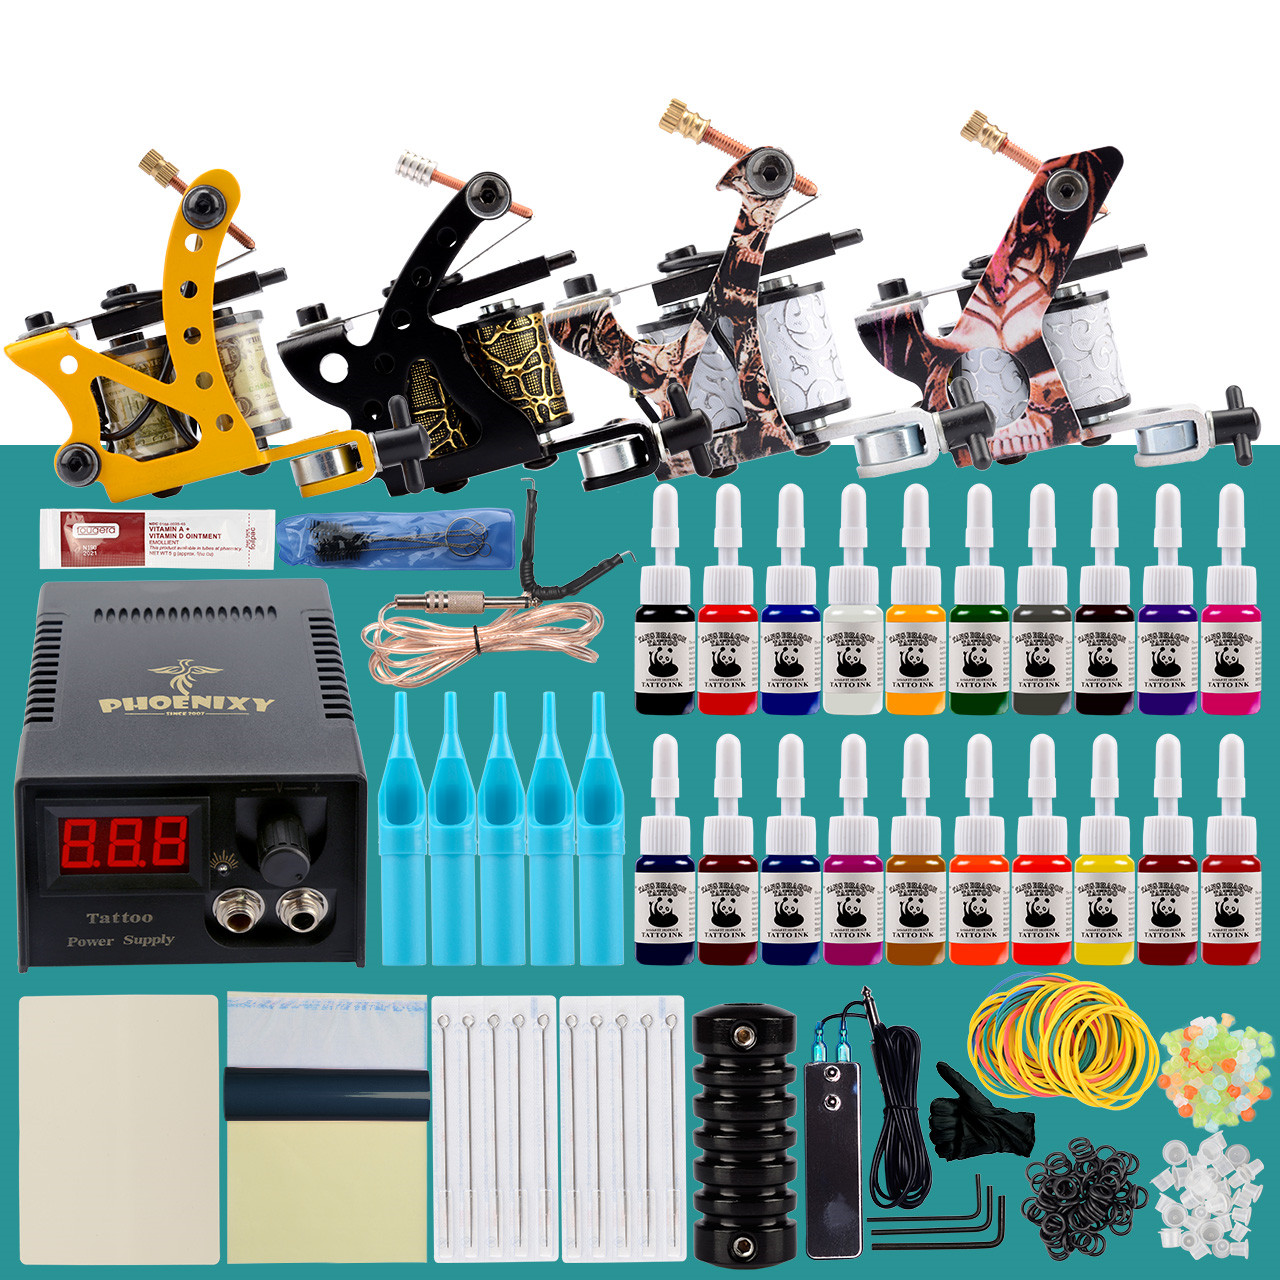 Professional Tattoo Kit 4 Machines Guns Set Tattoo Inks Pigment Power Supply Accessories Body Art Makeup Complete Tattoo Set